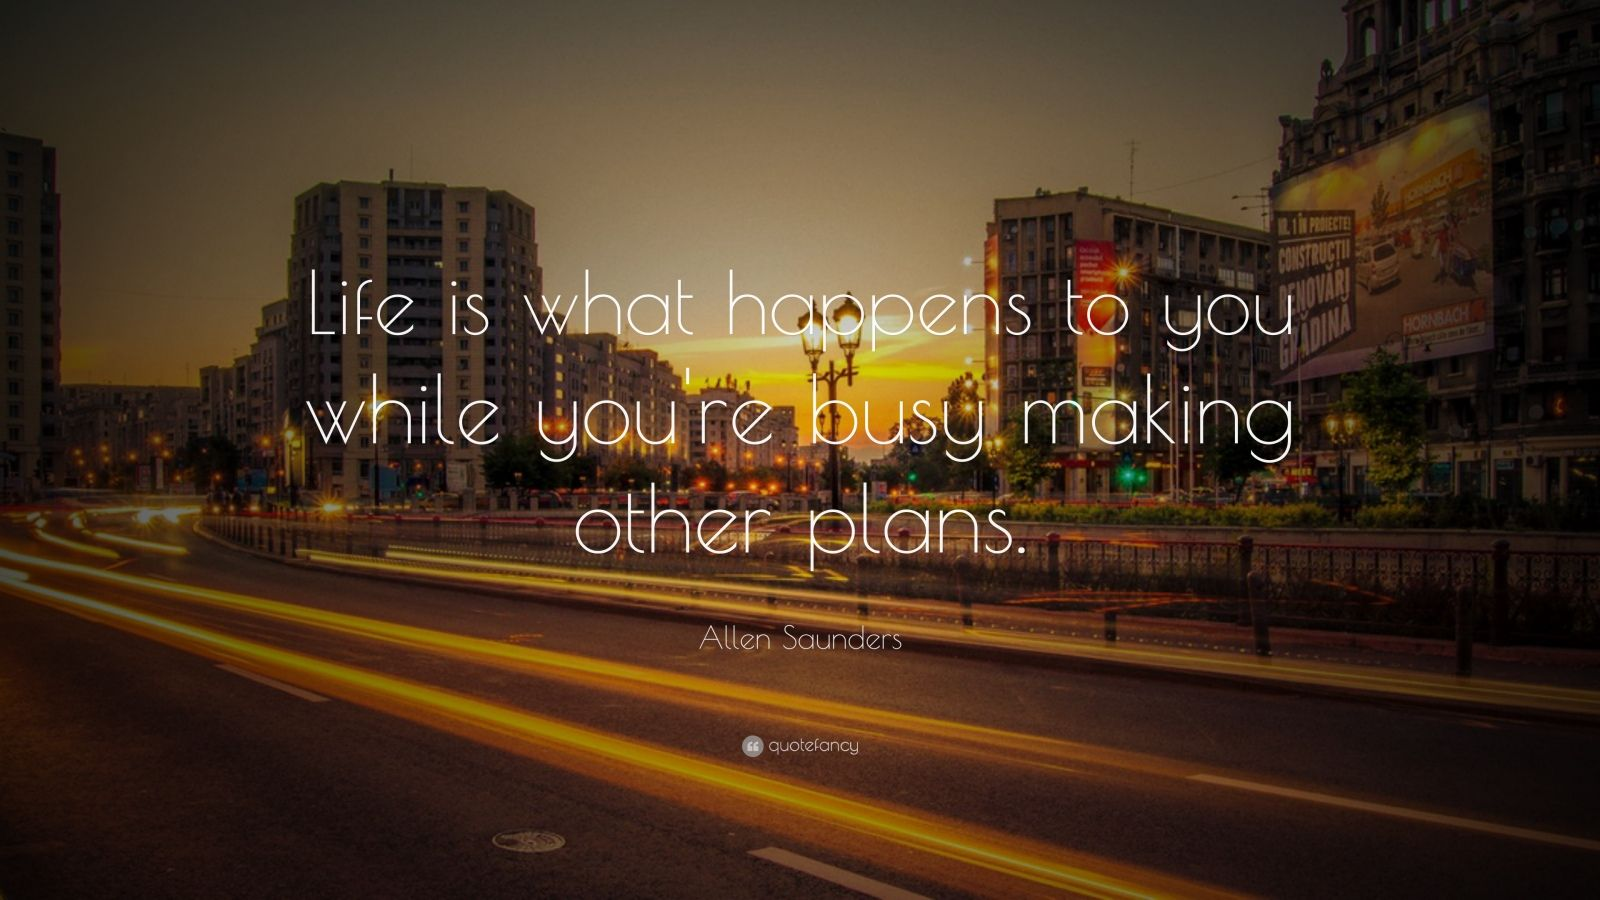 """Allen Saunders Quote: """"Life is what happens to you while you're busy making other plans."""""""